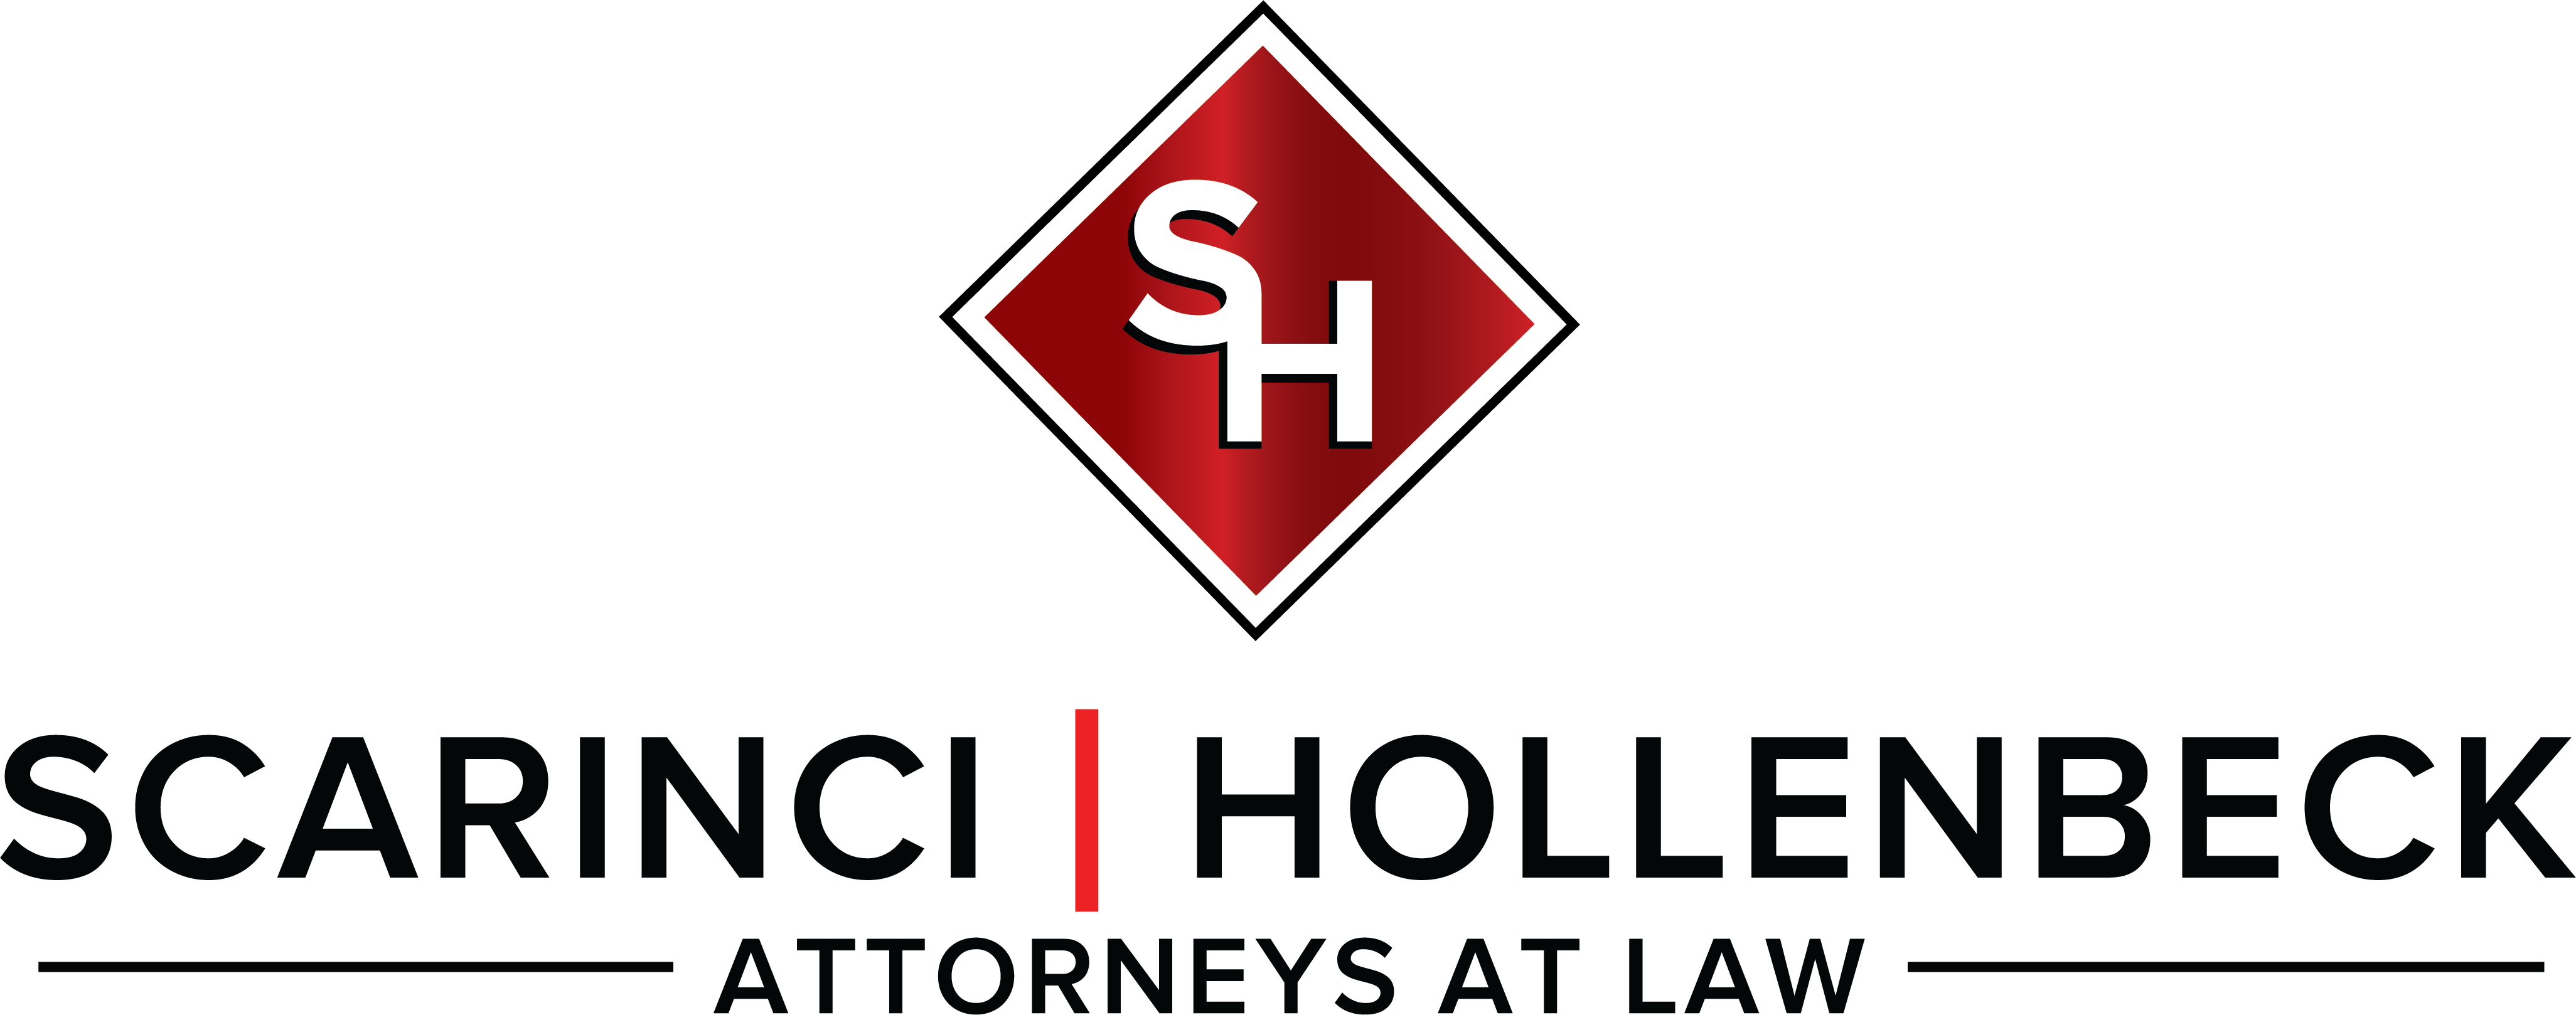 Scarinci Hollenbeck logo from 2018